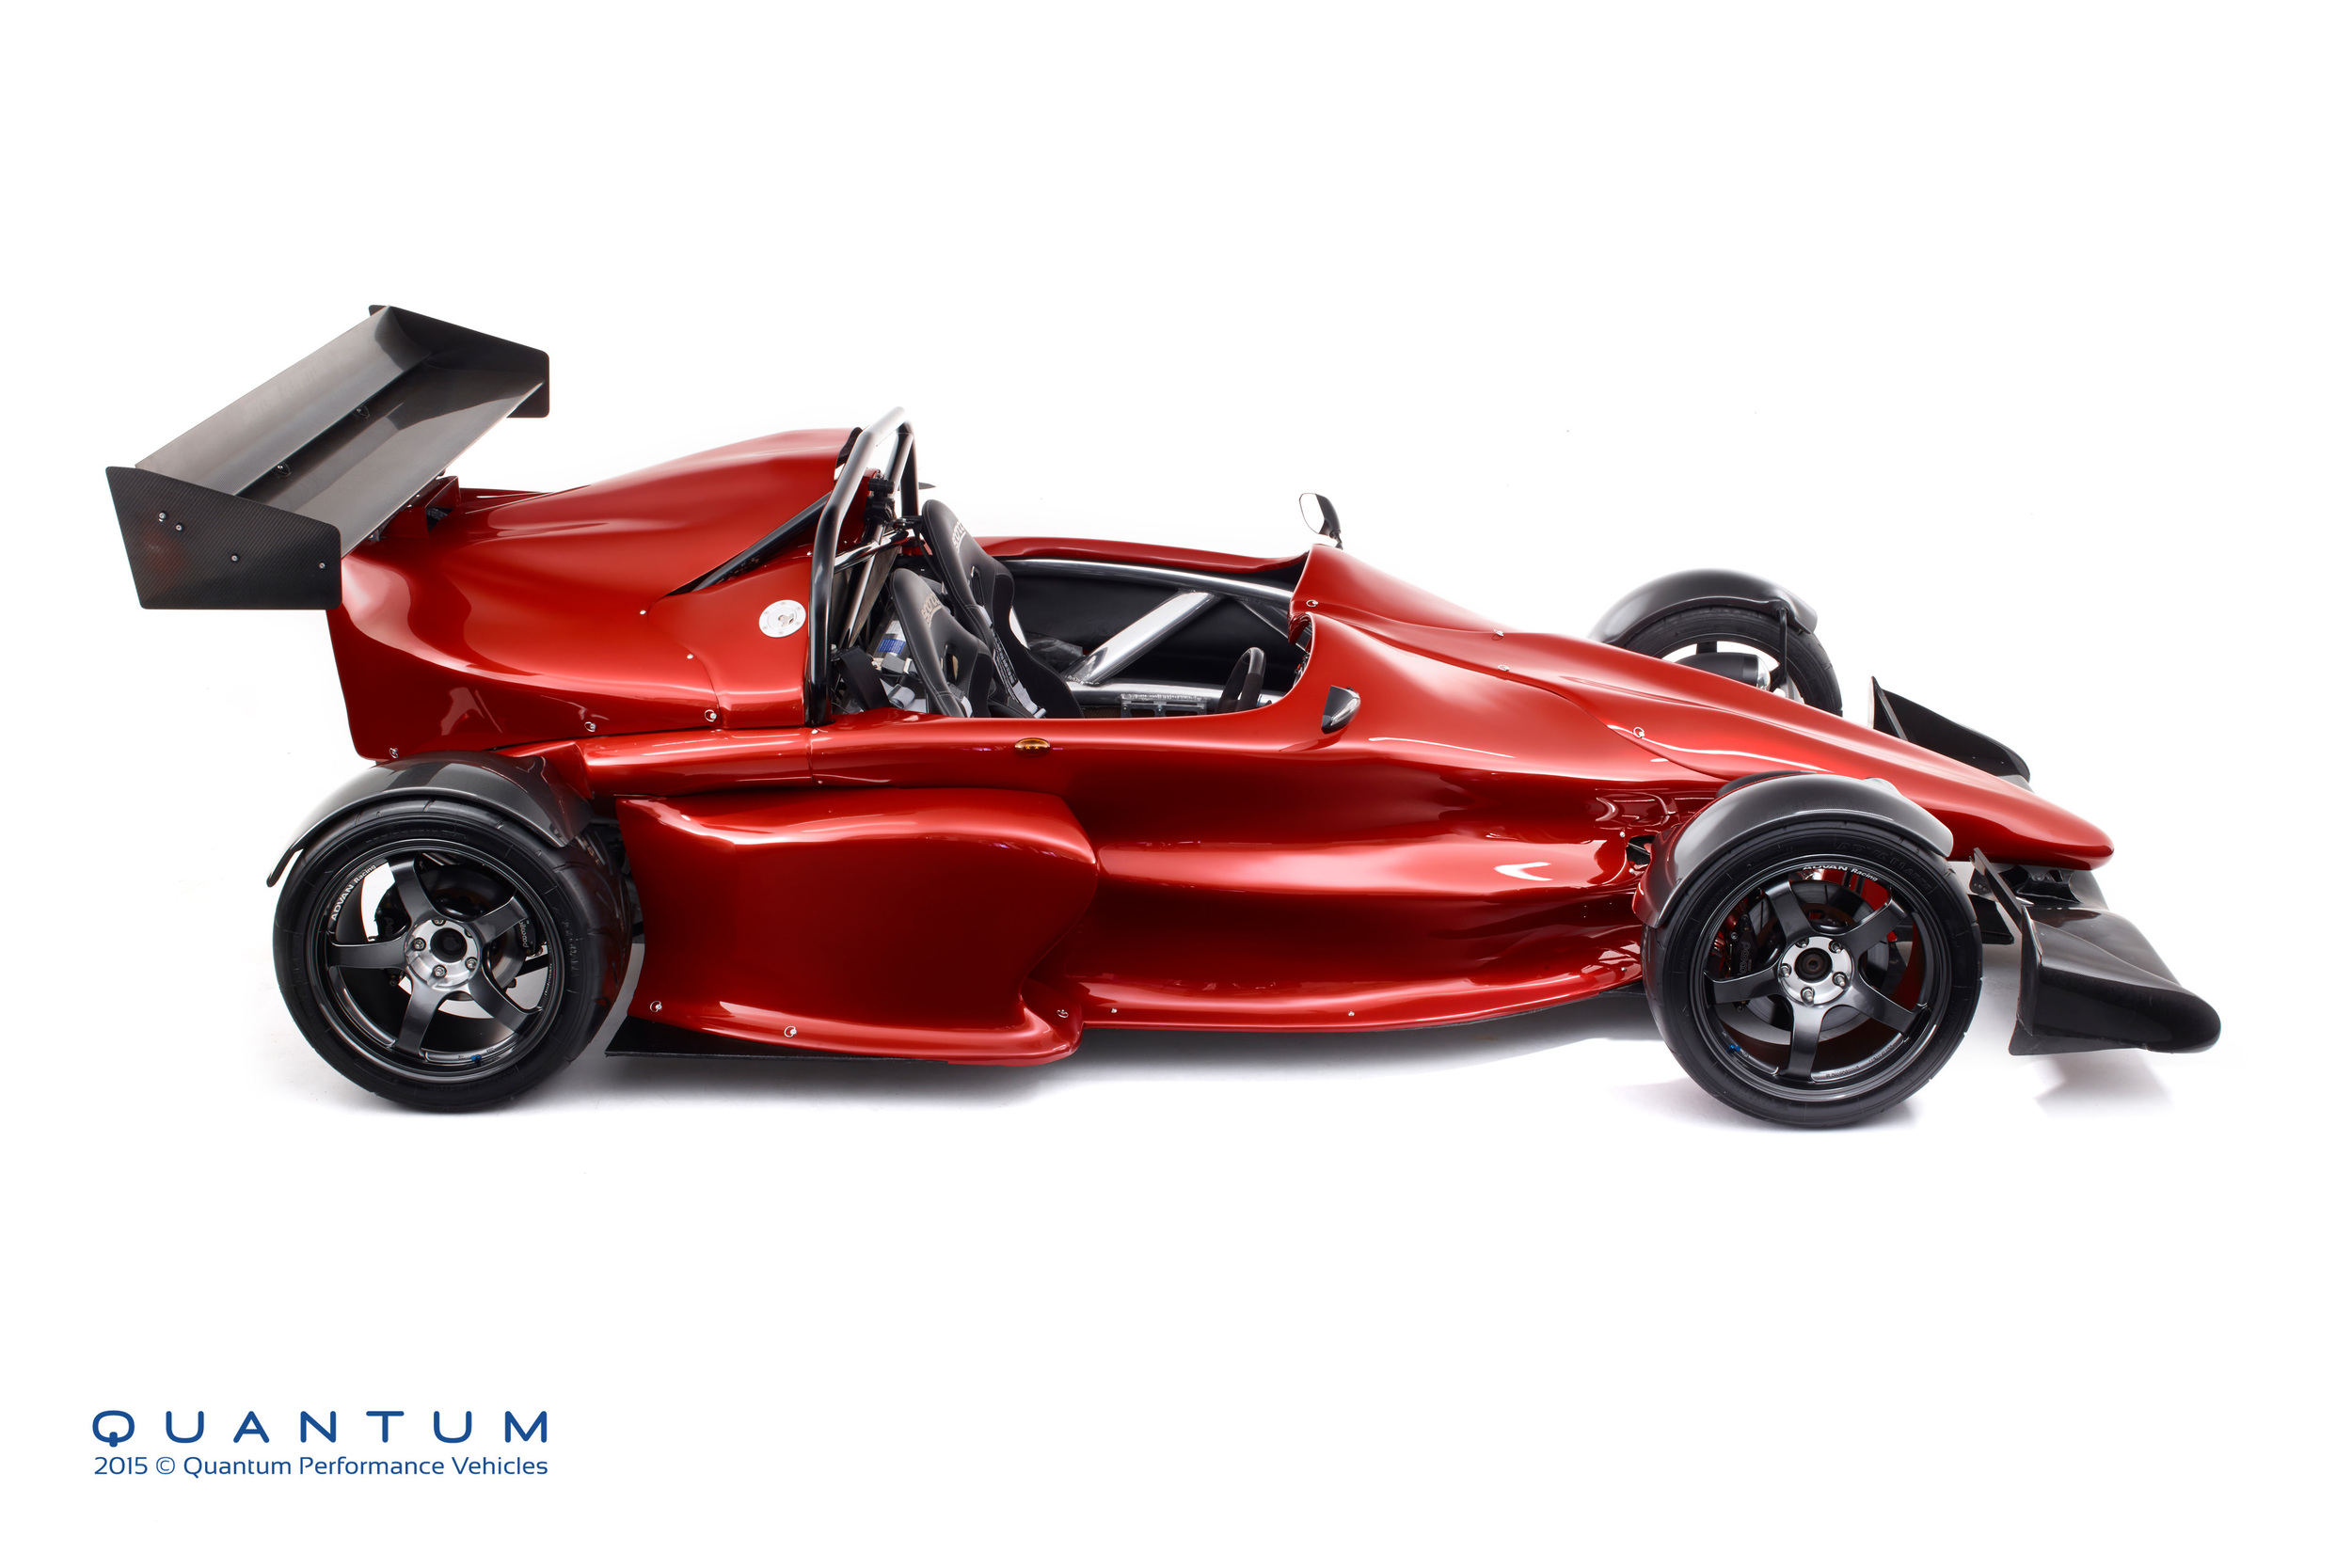 Forget the Ariel Atom 500 V8, Here's the 700 HP Quantum GP700 ...